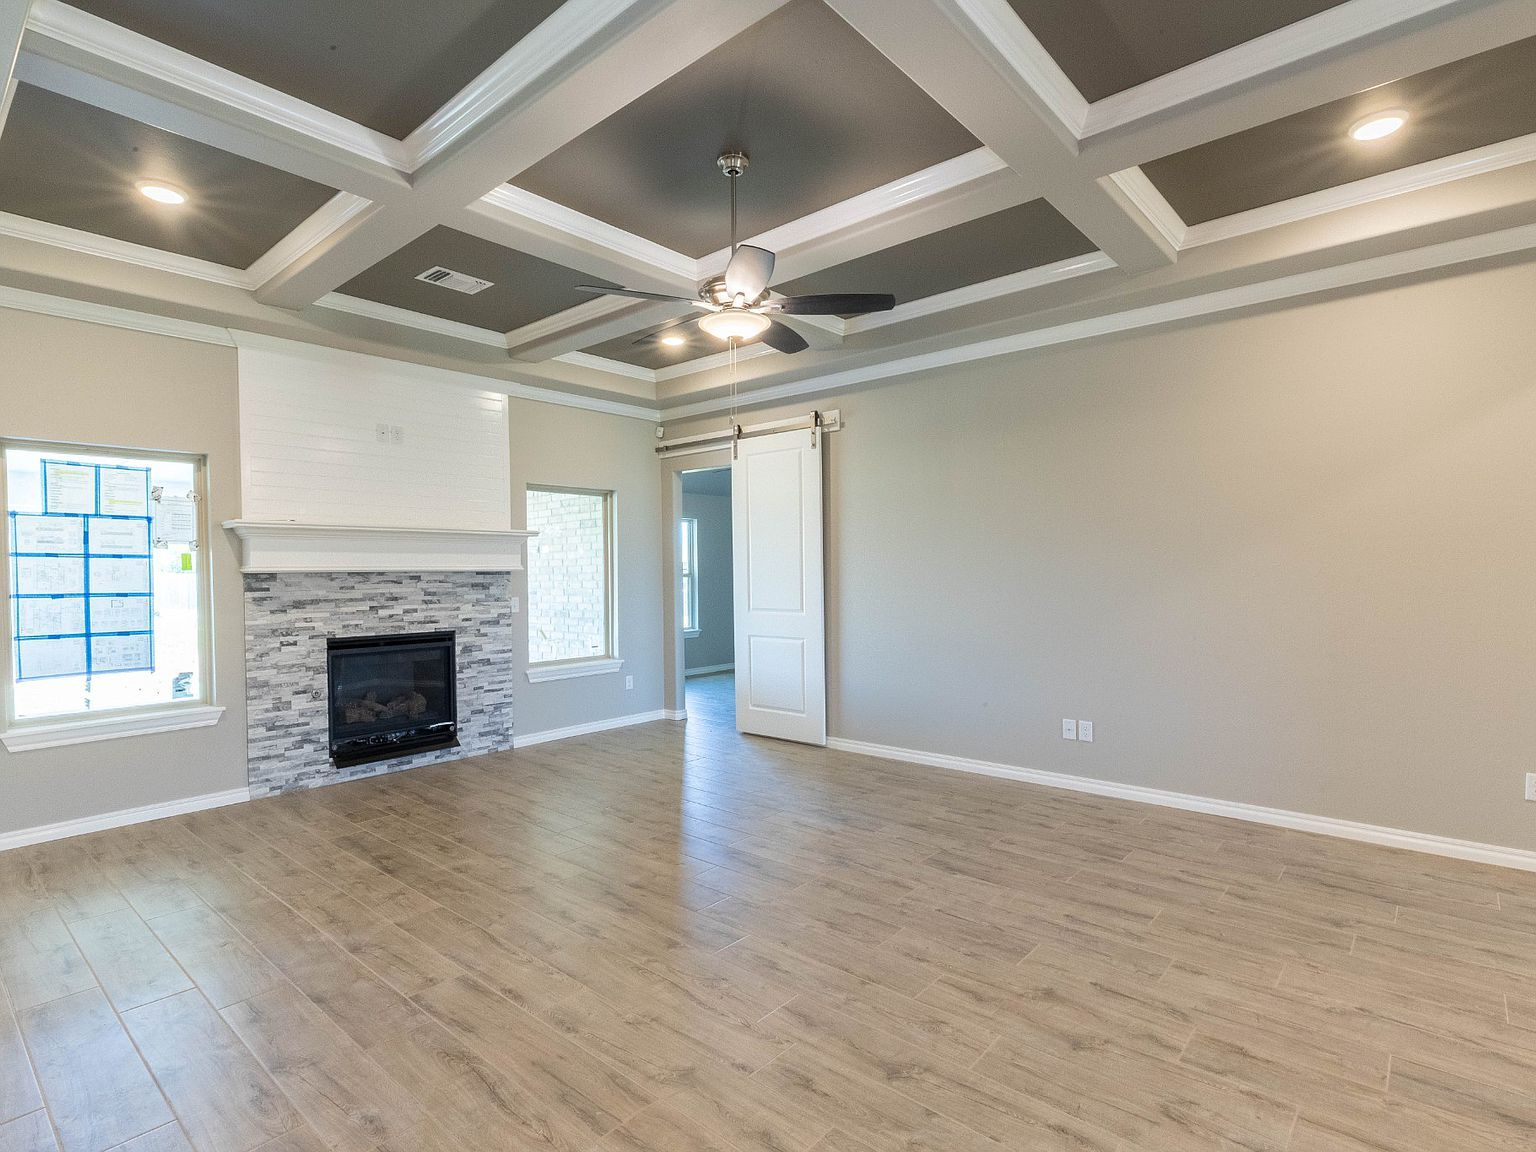 Carter Home Remodeling Is A Full Service General Contractor In San